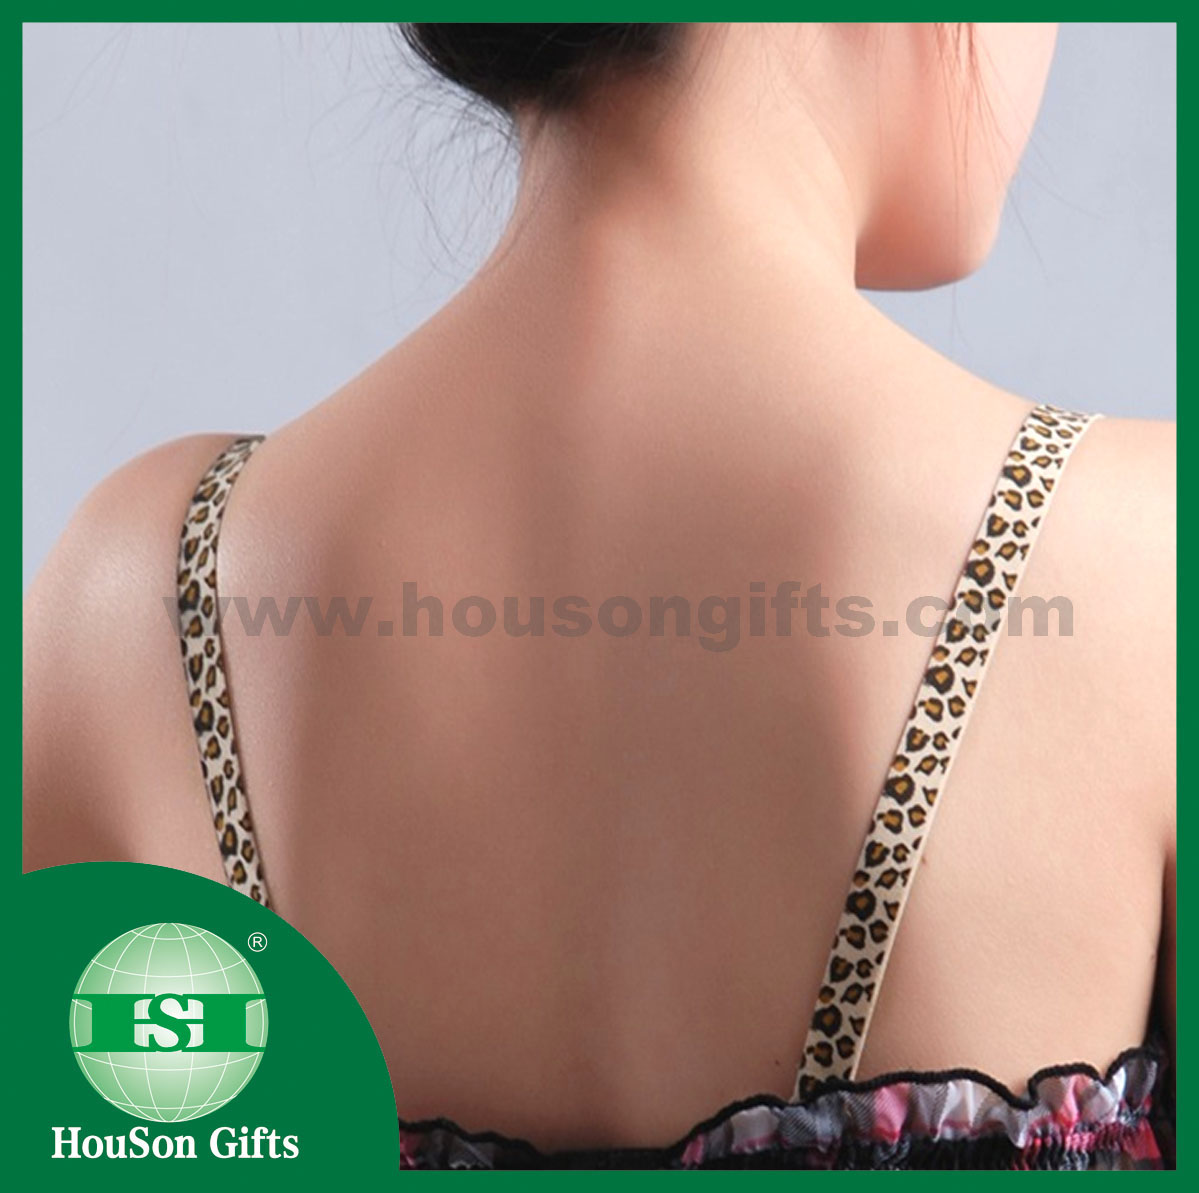 Bra strap supplier